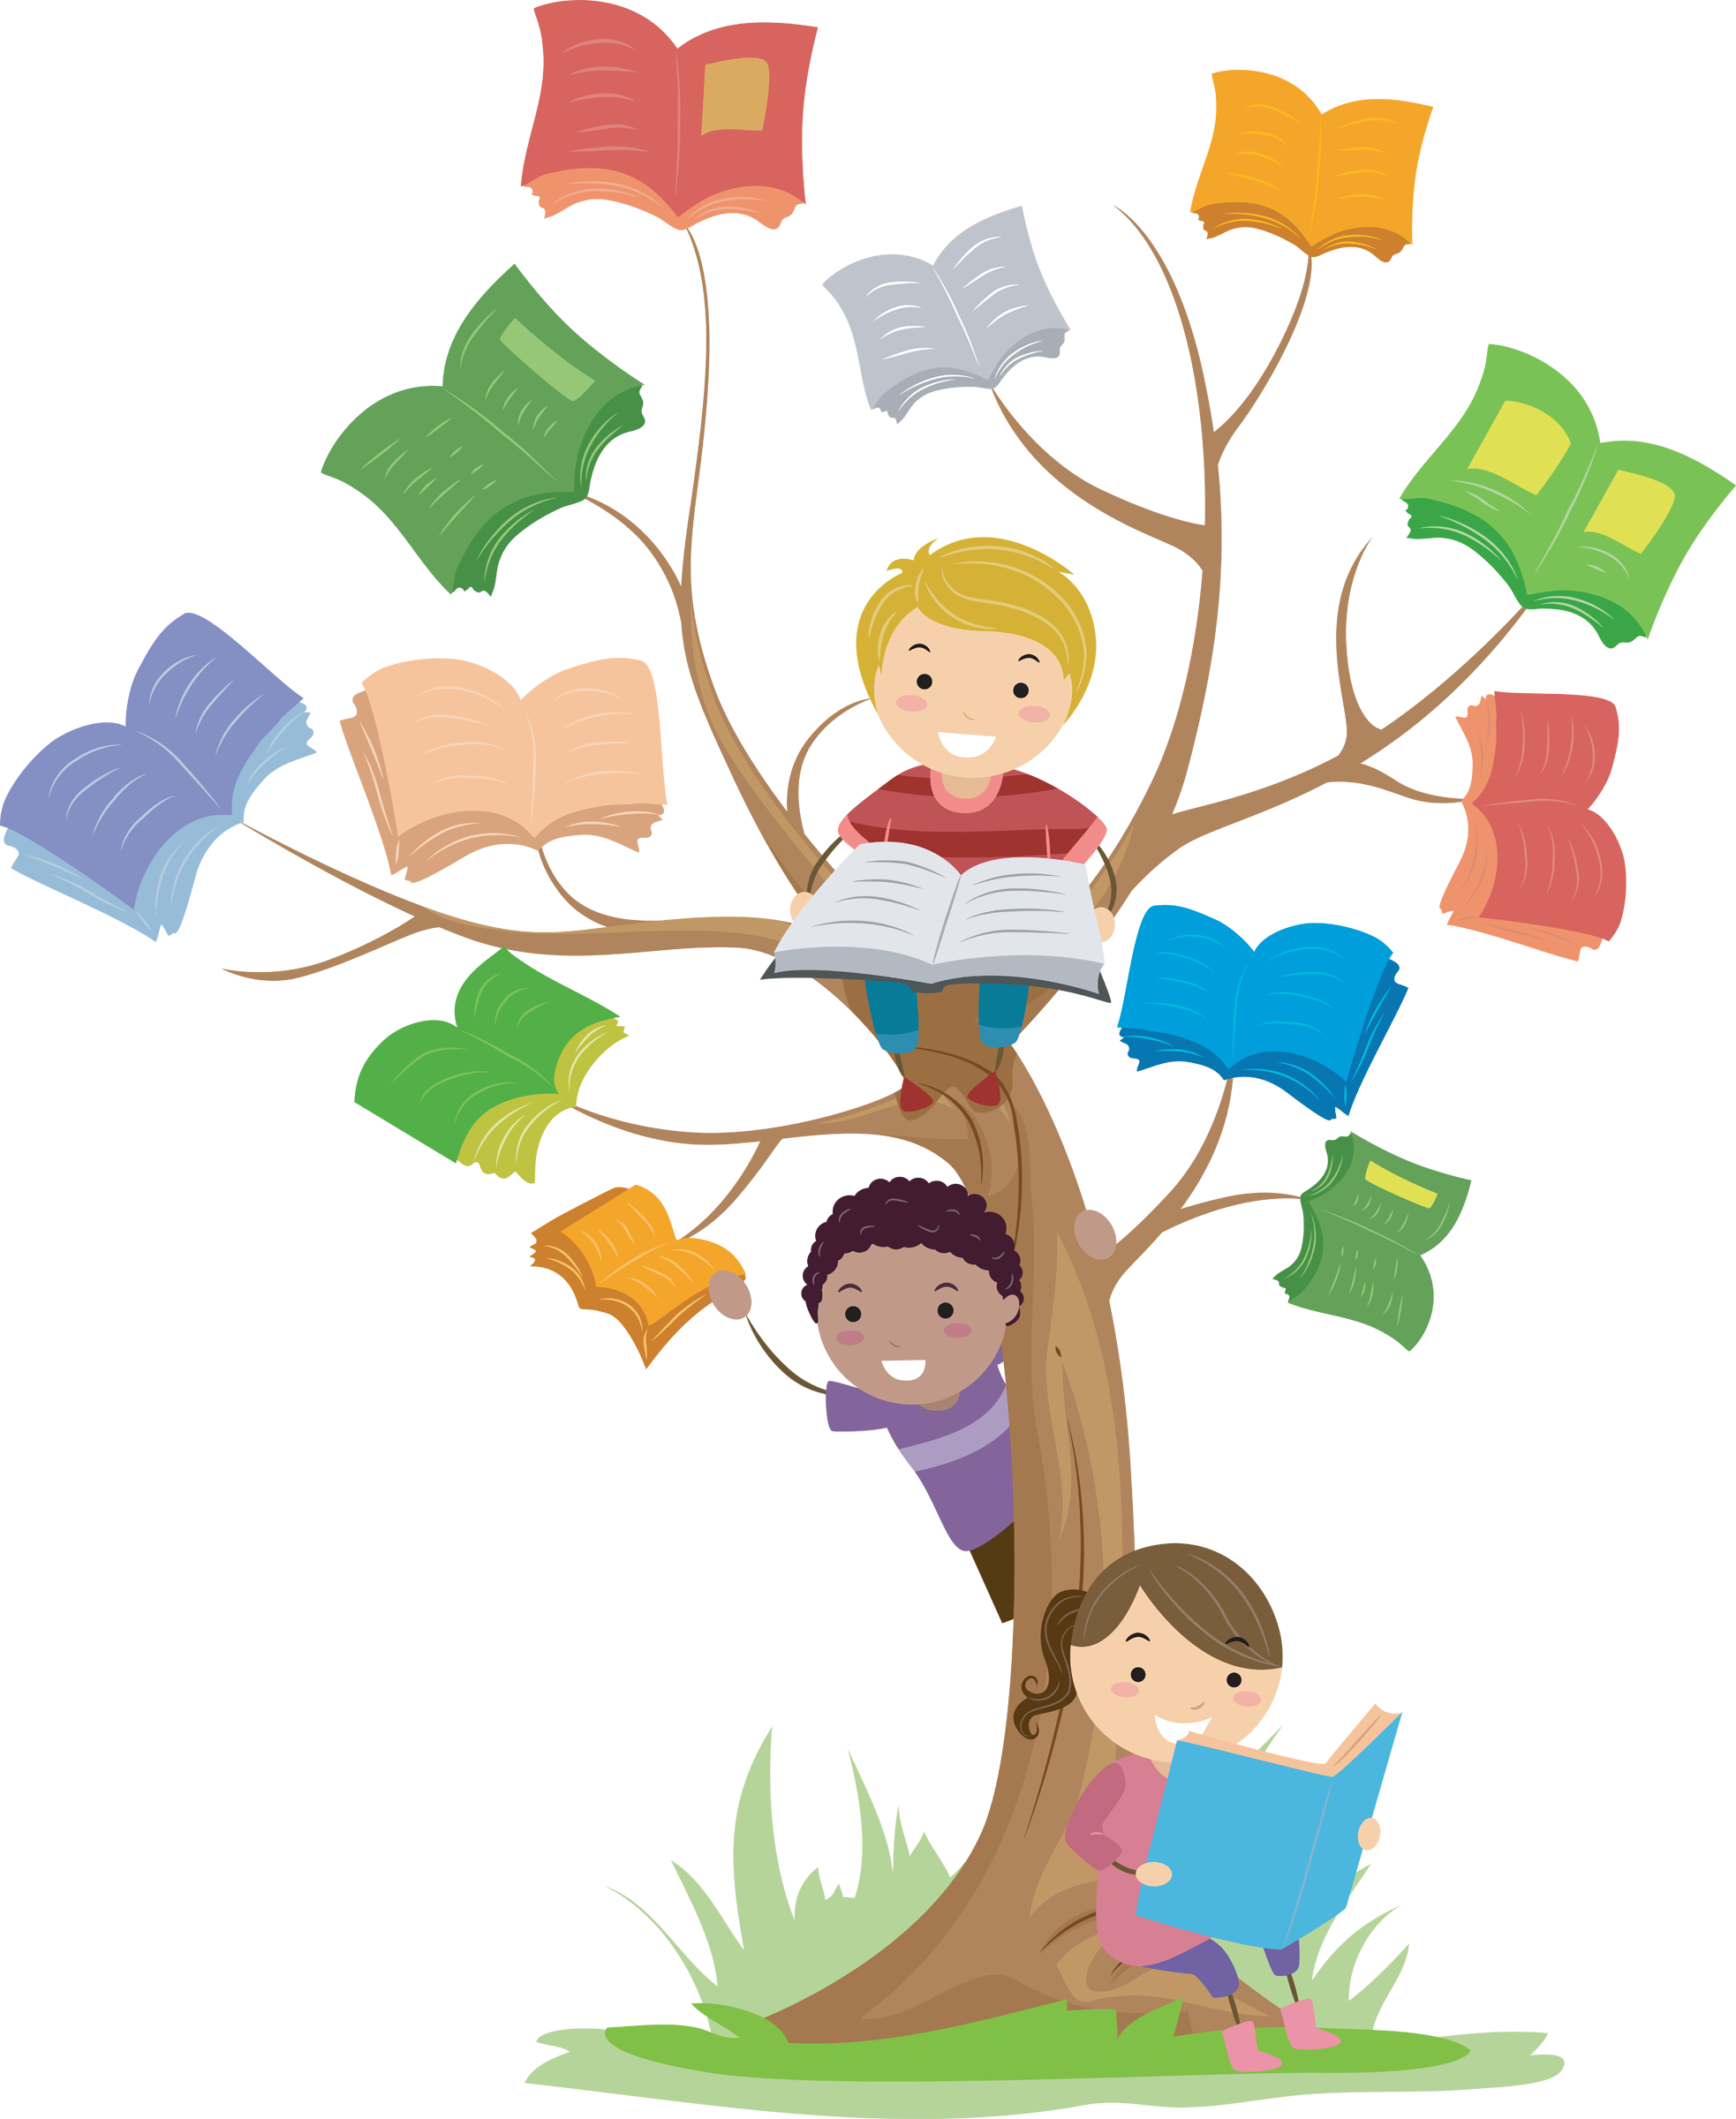 Education tree clipart clipart free download Kids Learning Clipart Image Group (84+) clipart free download